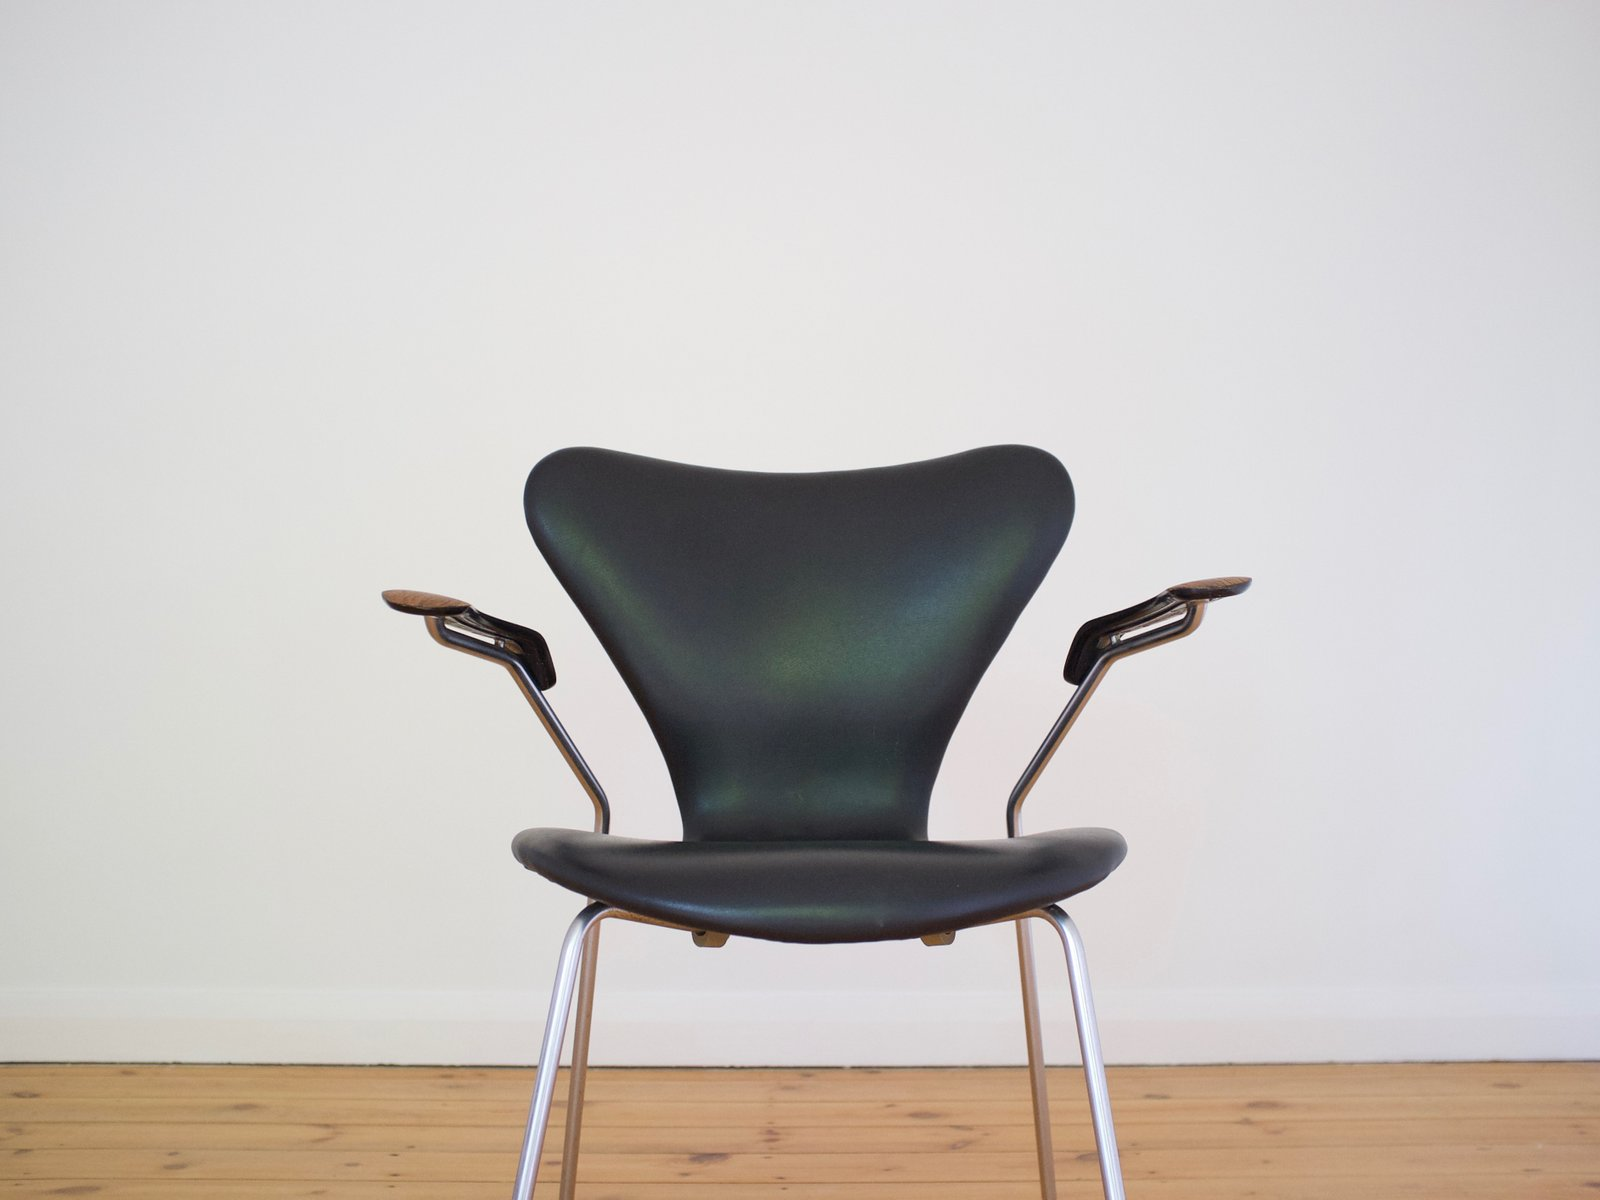 Series 7 armchair by arne jacobsen for fritz hansen 1965 for Chaise serie 7 arne jacobsen 1955